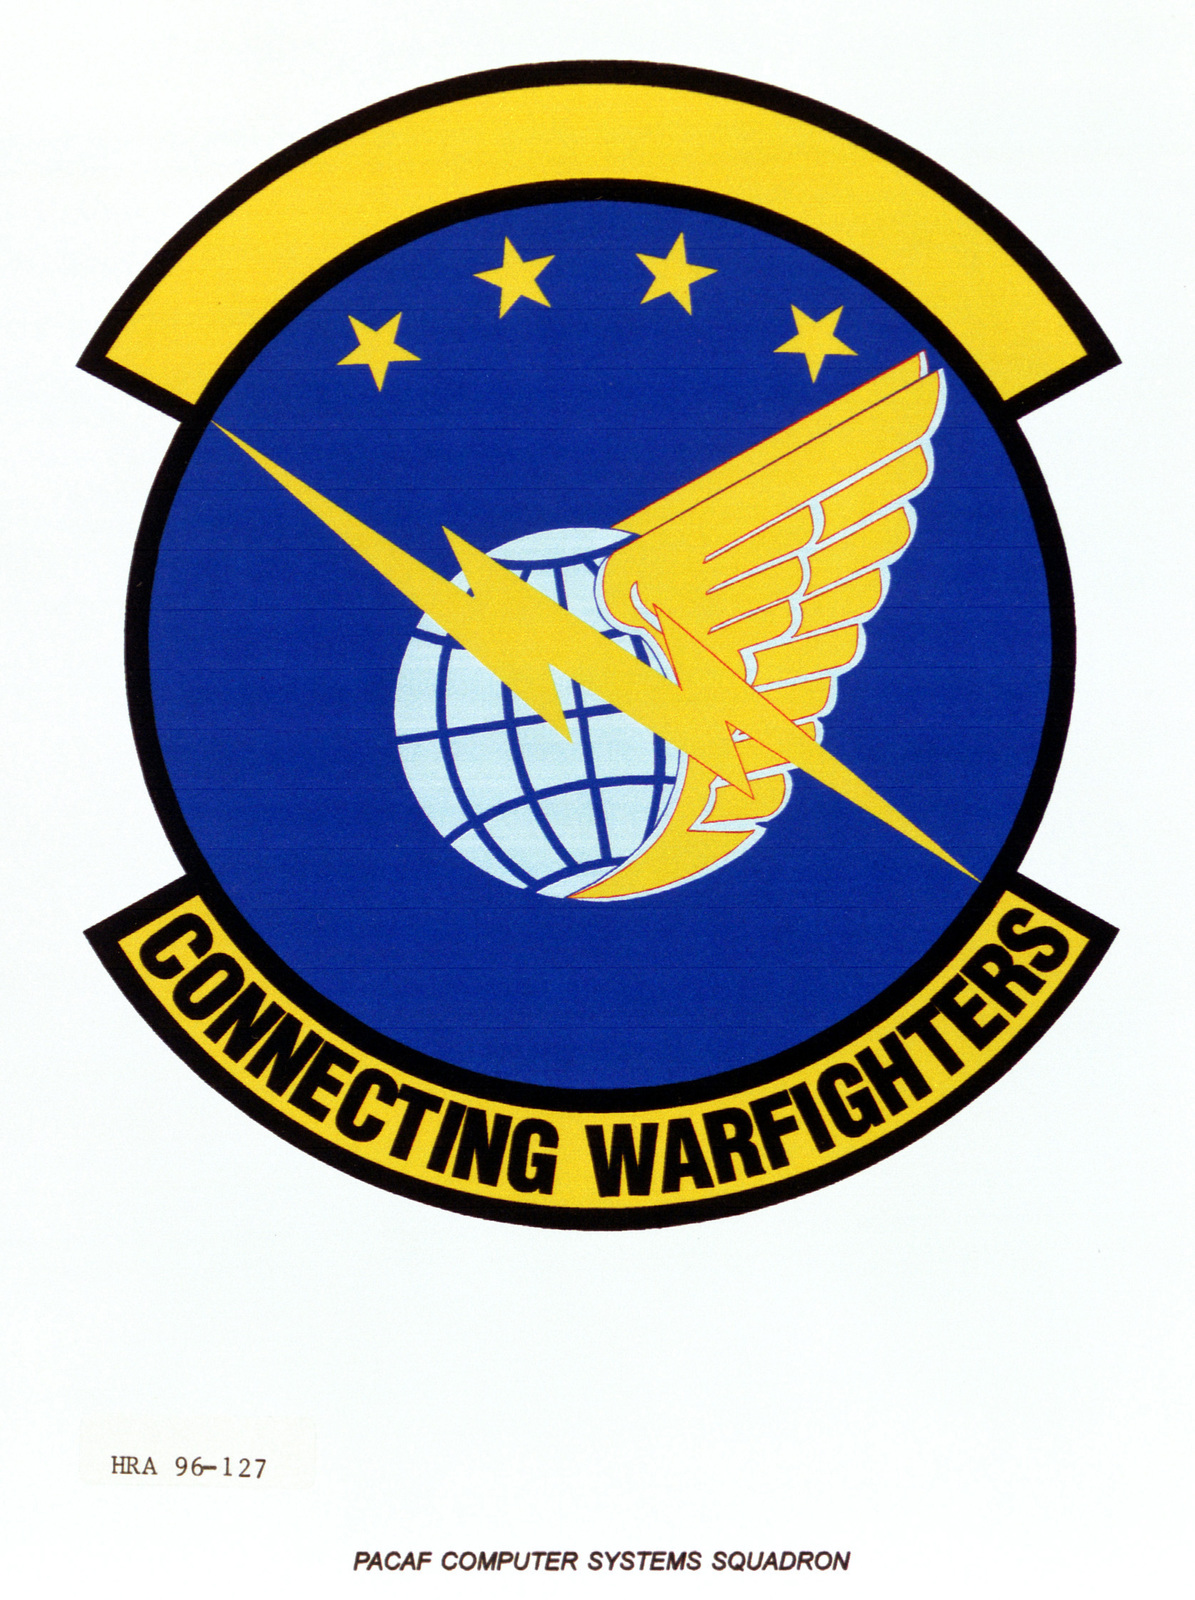 Air Force Organizational Emblem. PACAF Computer Systems Squadron Exact Date Shot Unknown